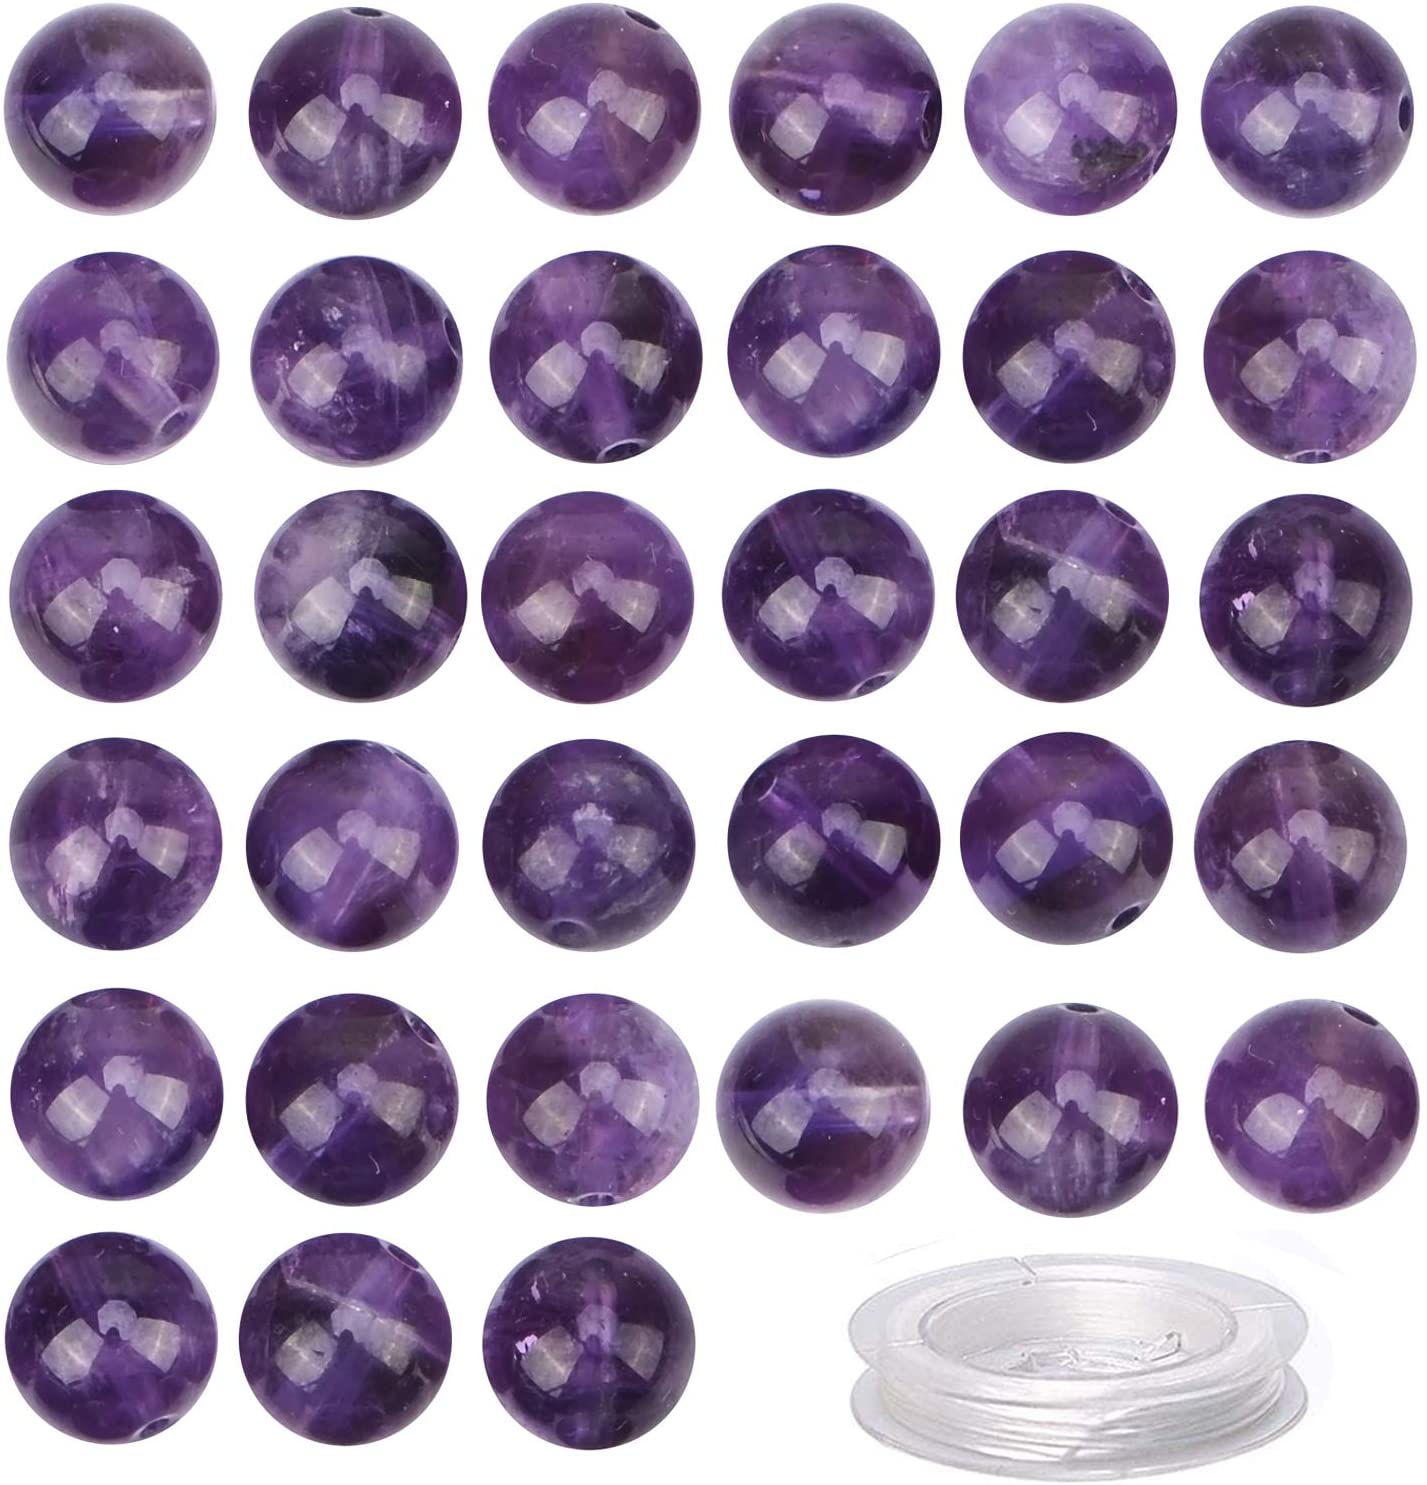 10 pcs of 20mm Carved natural gemstone beads clear quartz,amethyst rose quartz flower gemstone loose beads hand made jewelry charms L463